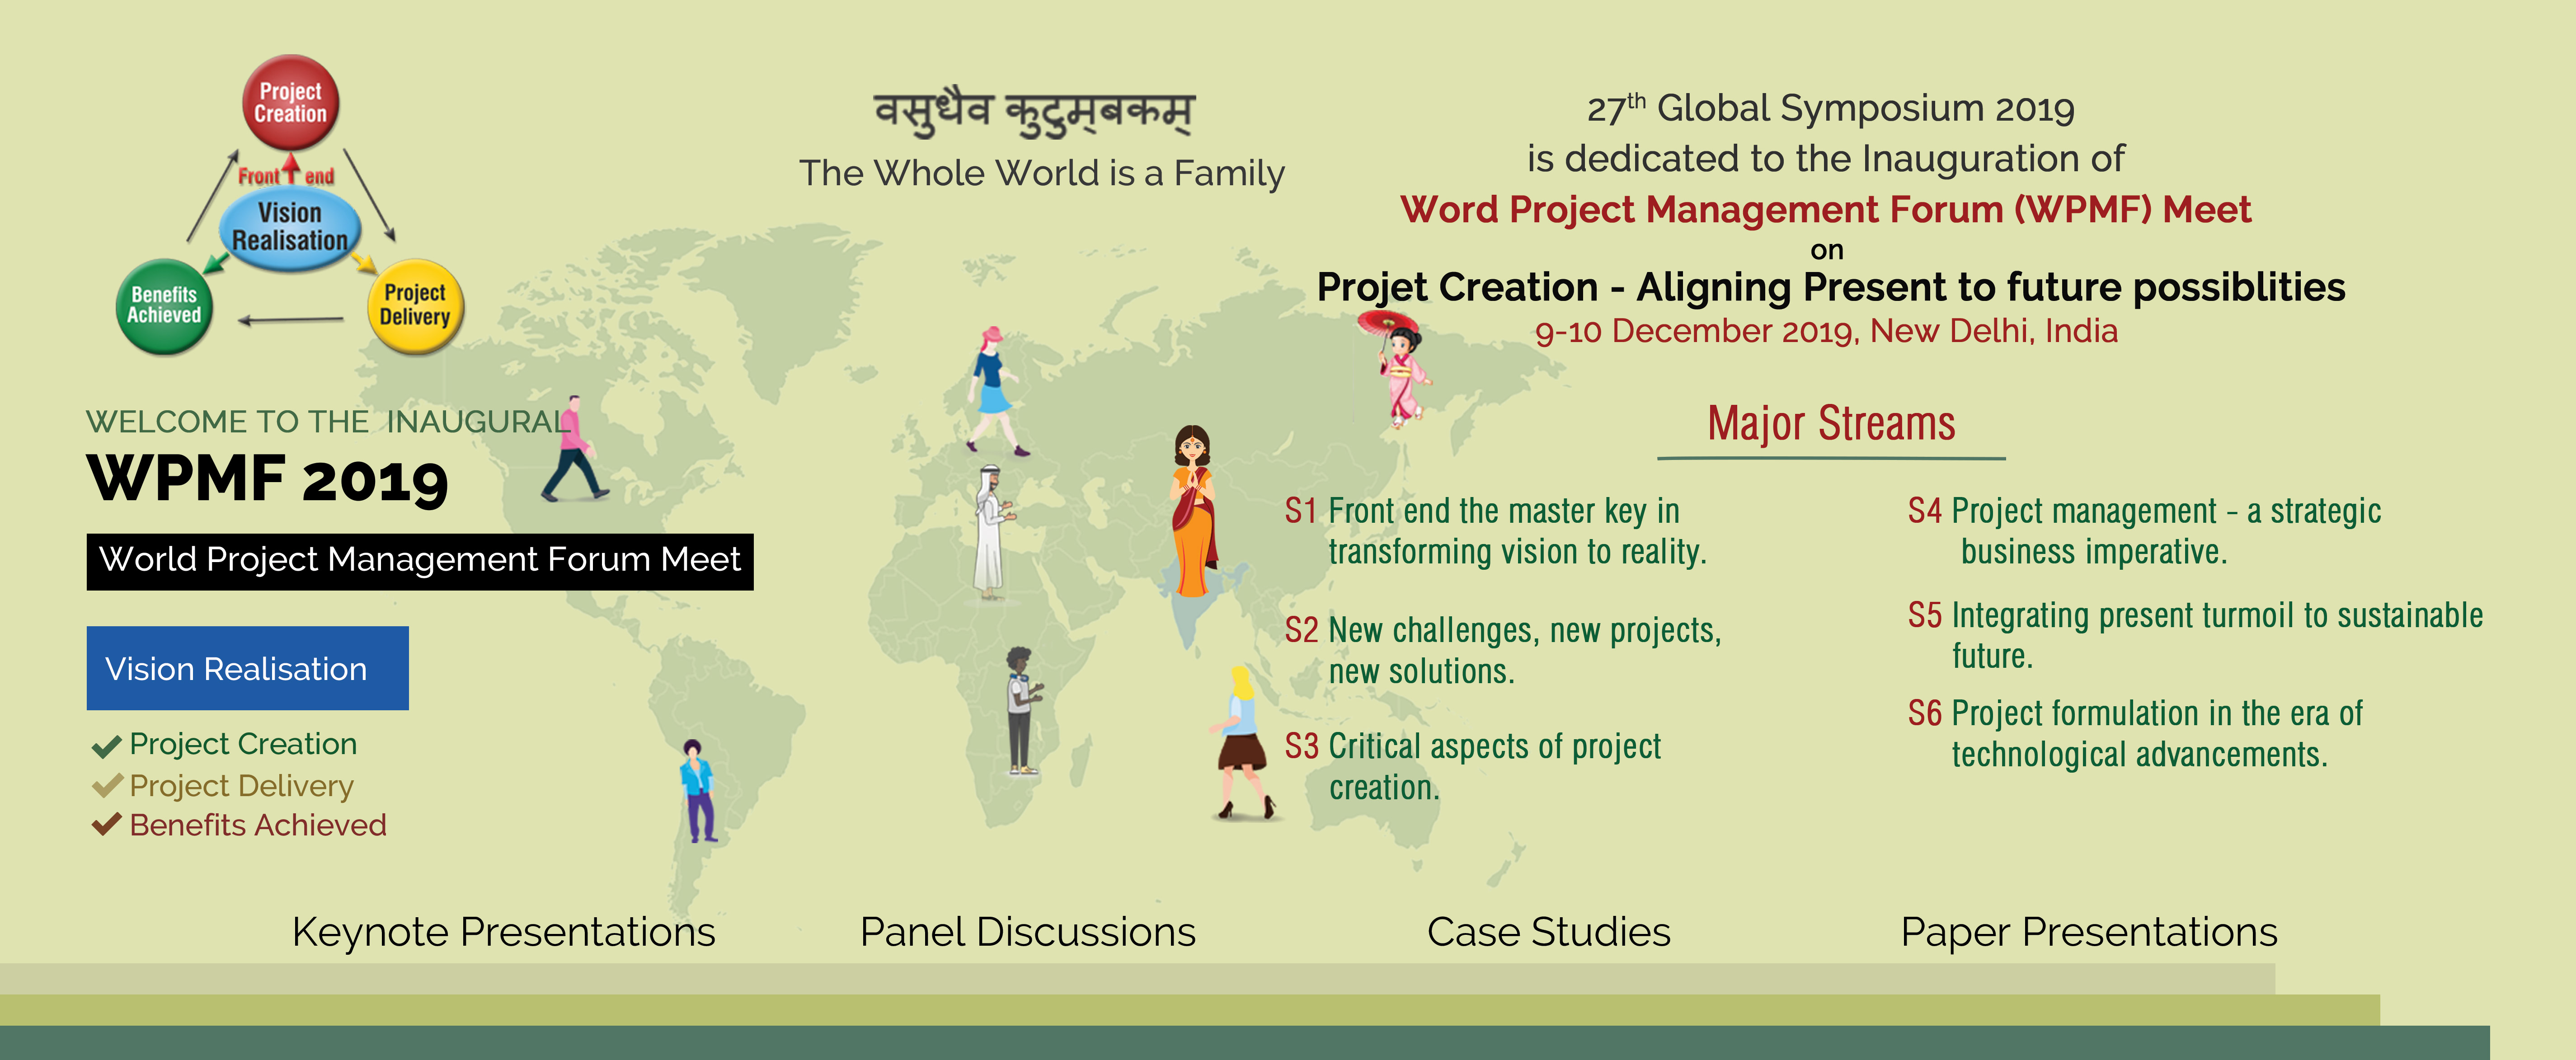 World Project Management Forum (WPMF) Meet, 9-10 December 2019, New Delhi, India